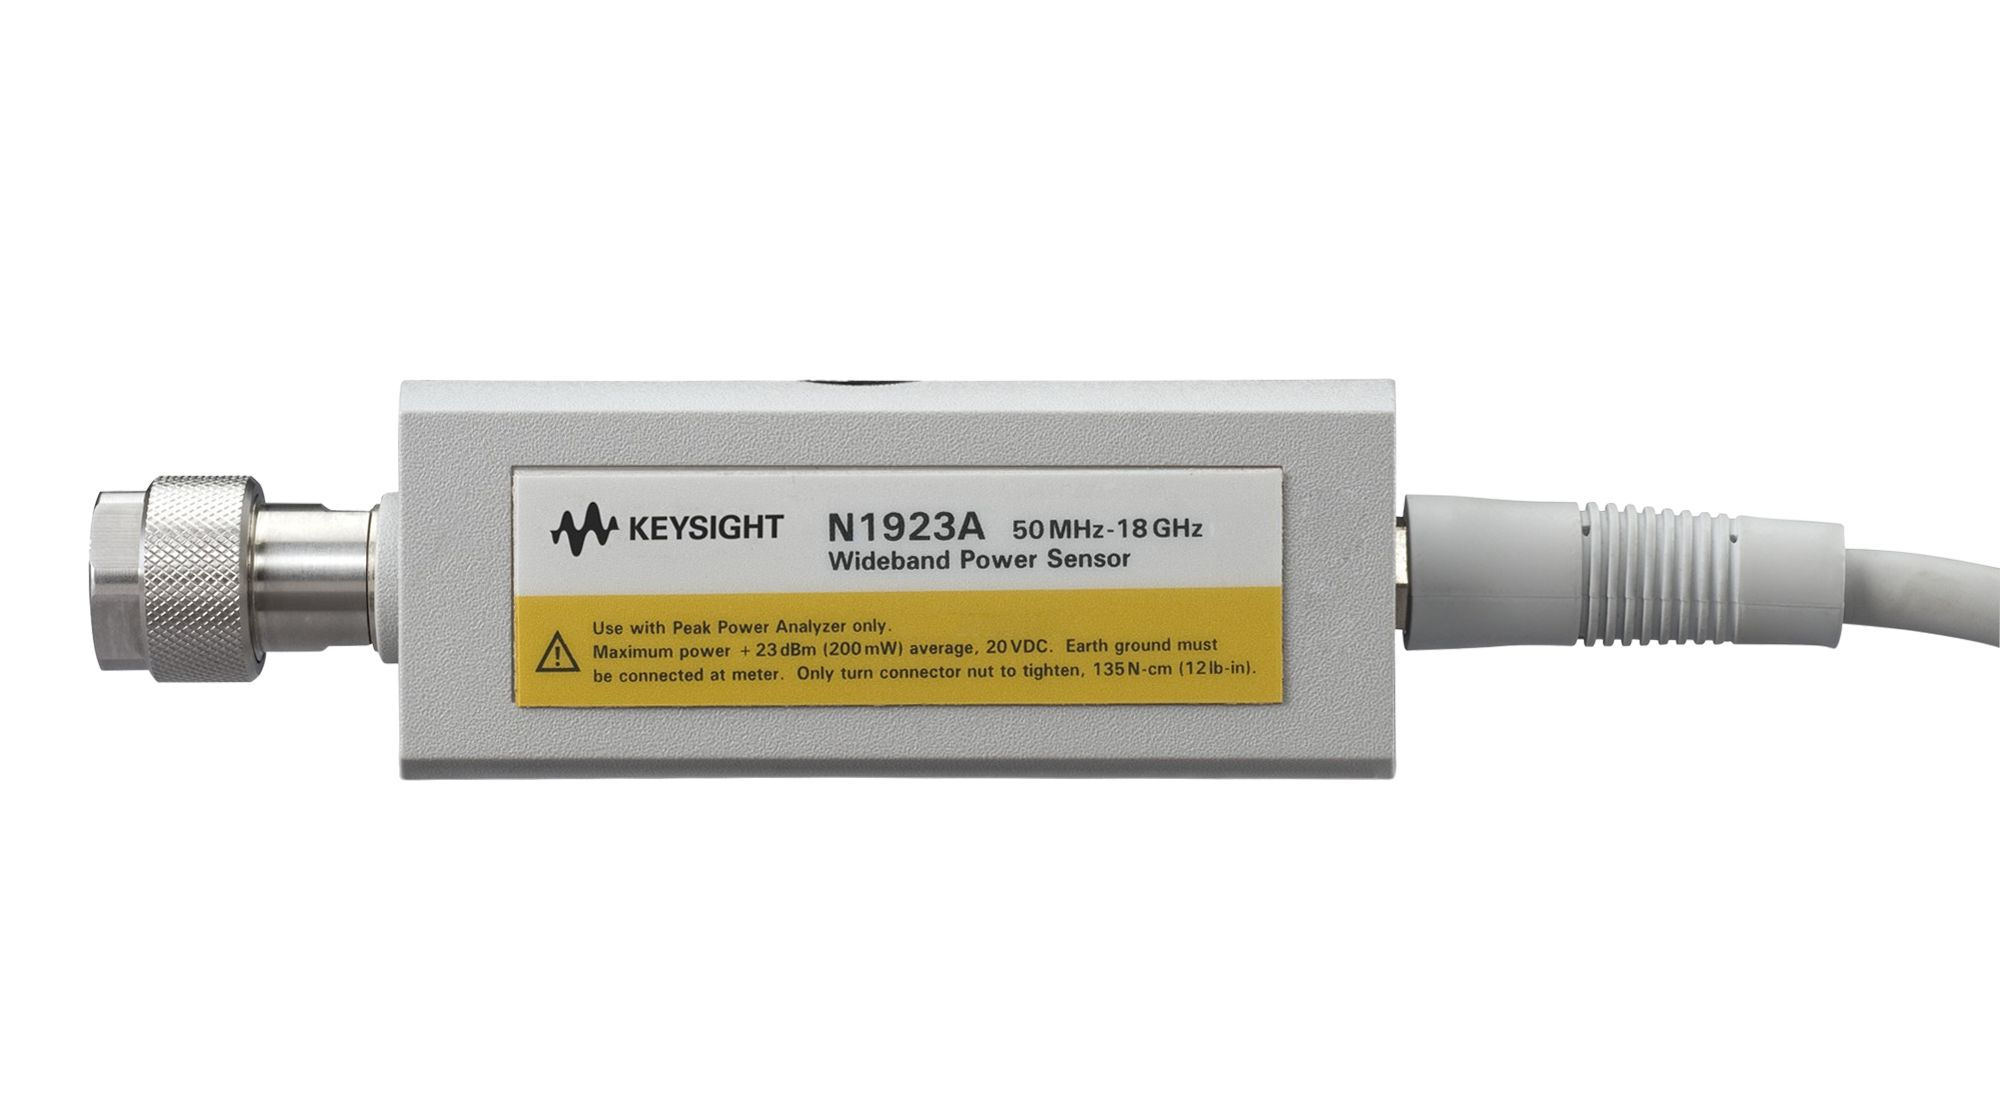 N1923A Wideband Power Sensor, 50 MHz to 18 GHz